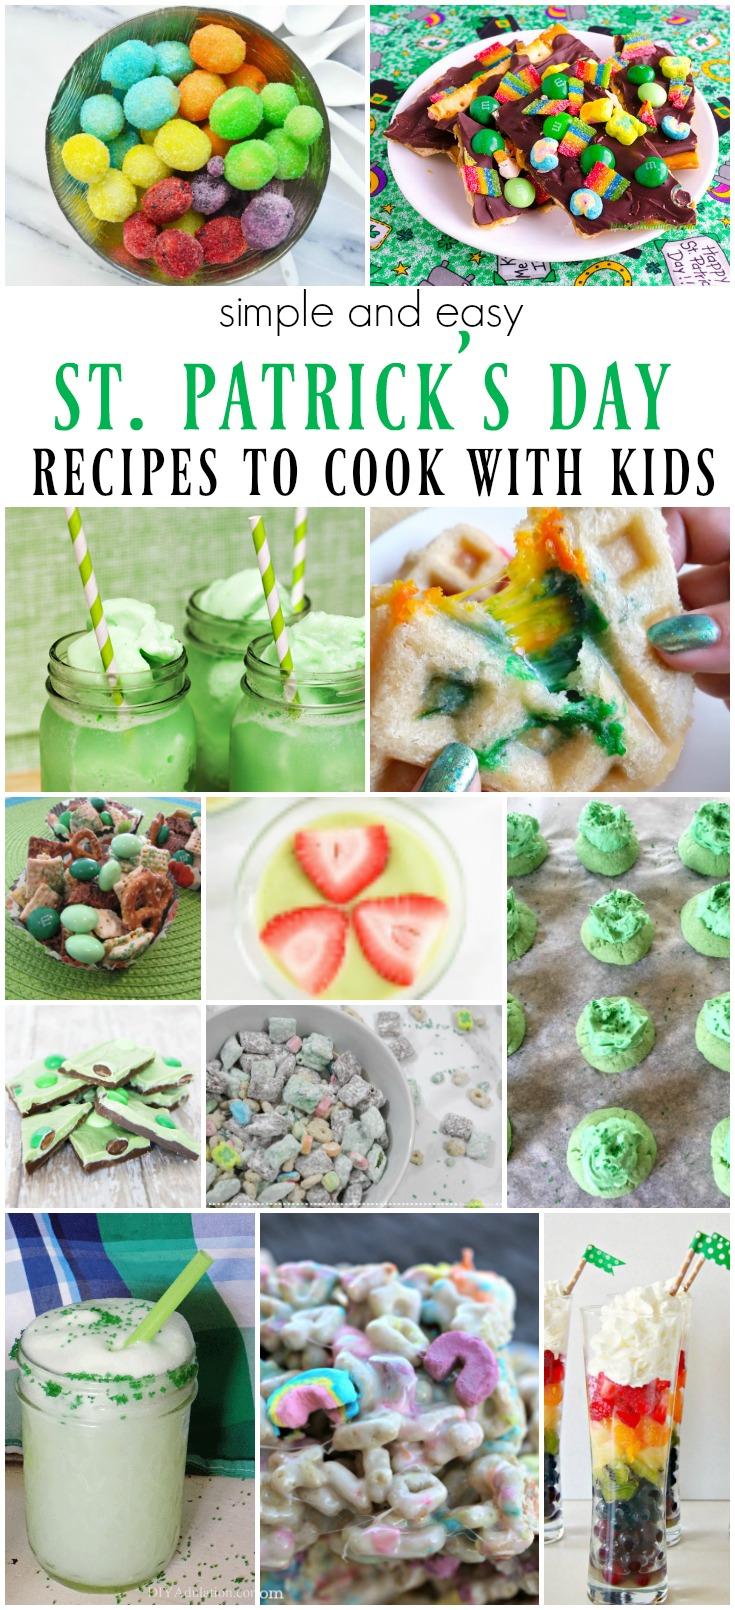 St. Patrick's Day Cooking with Kids - simple and easy recipes to make with kids.